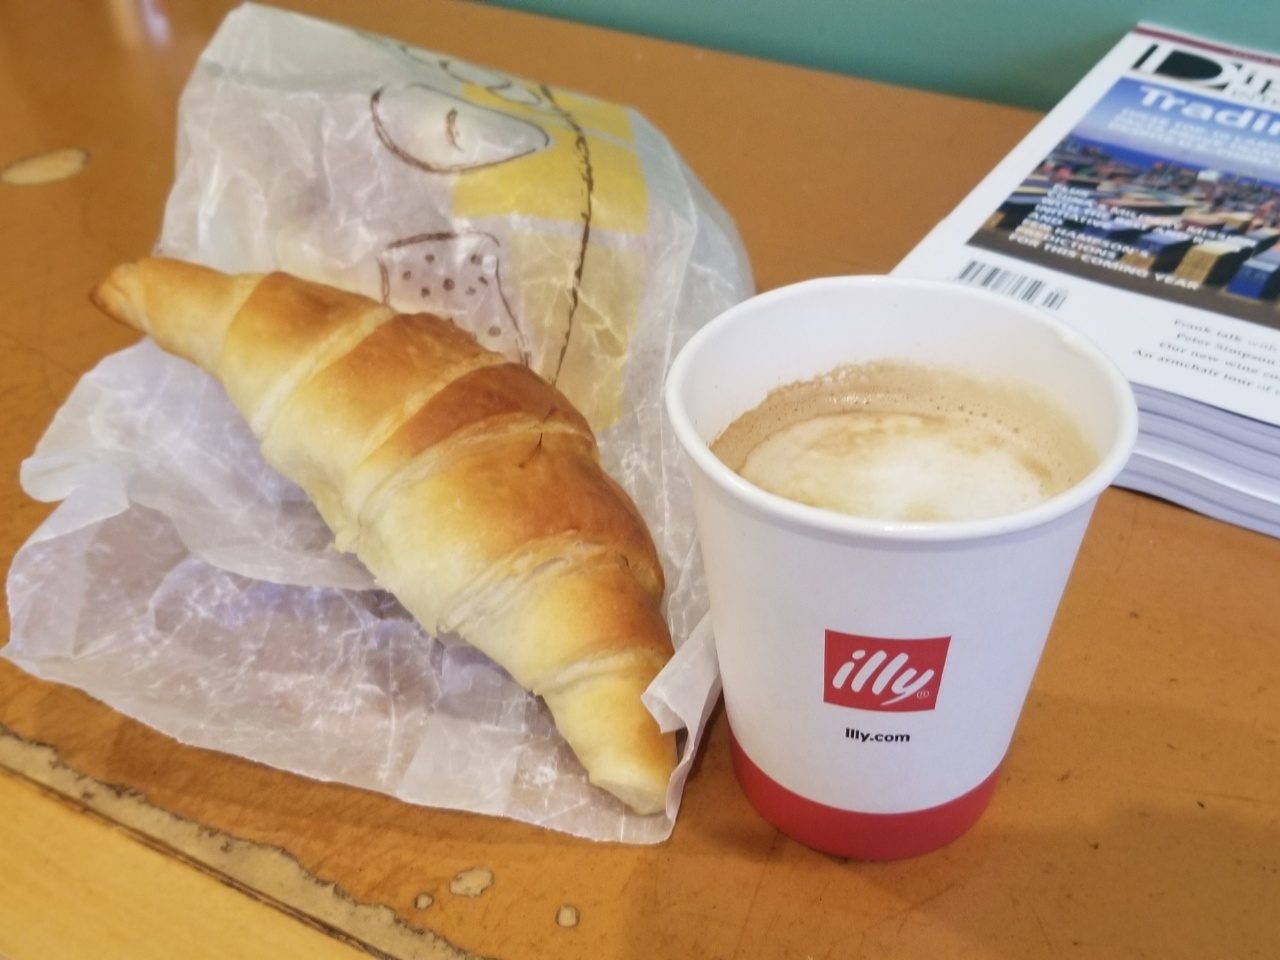 cappuccino and croissant from The French Baker